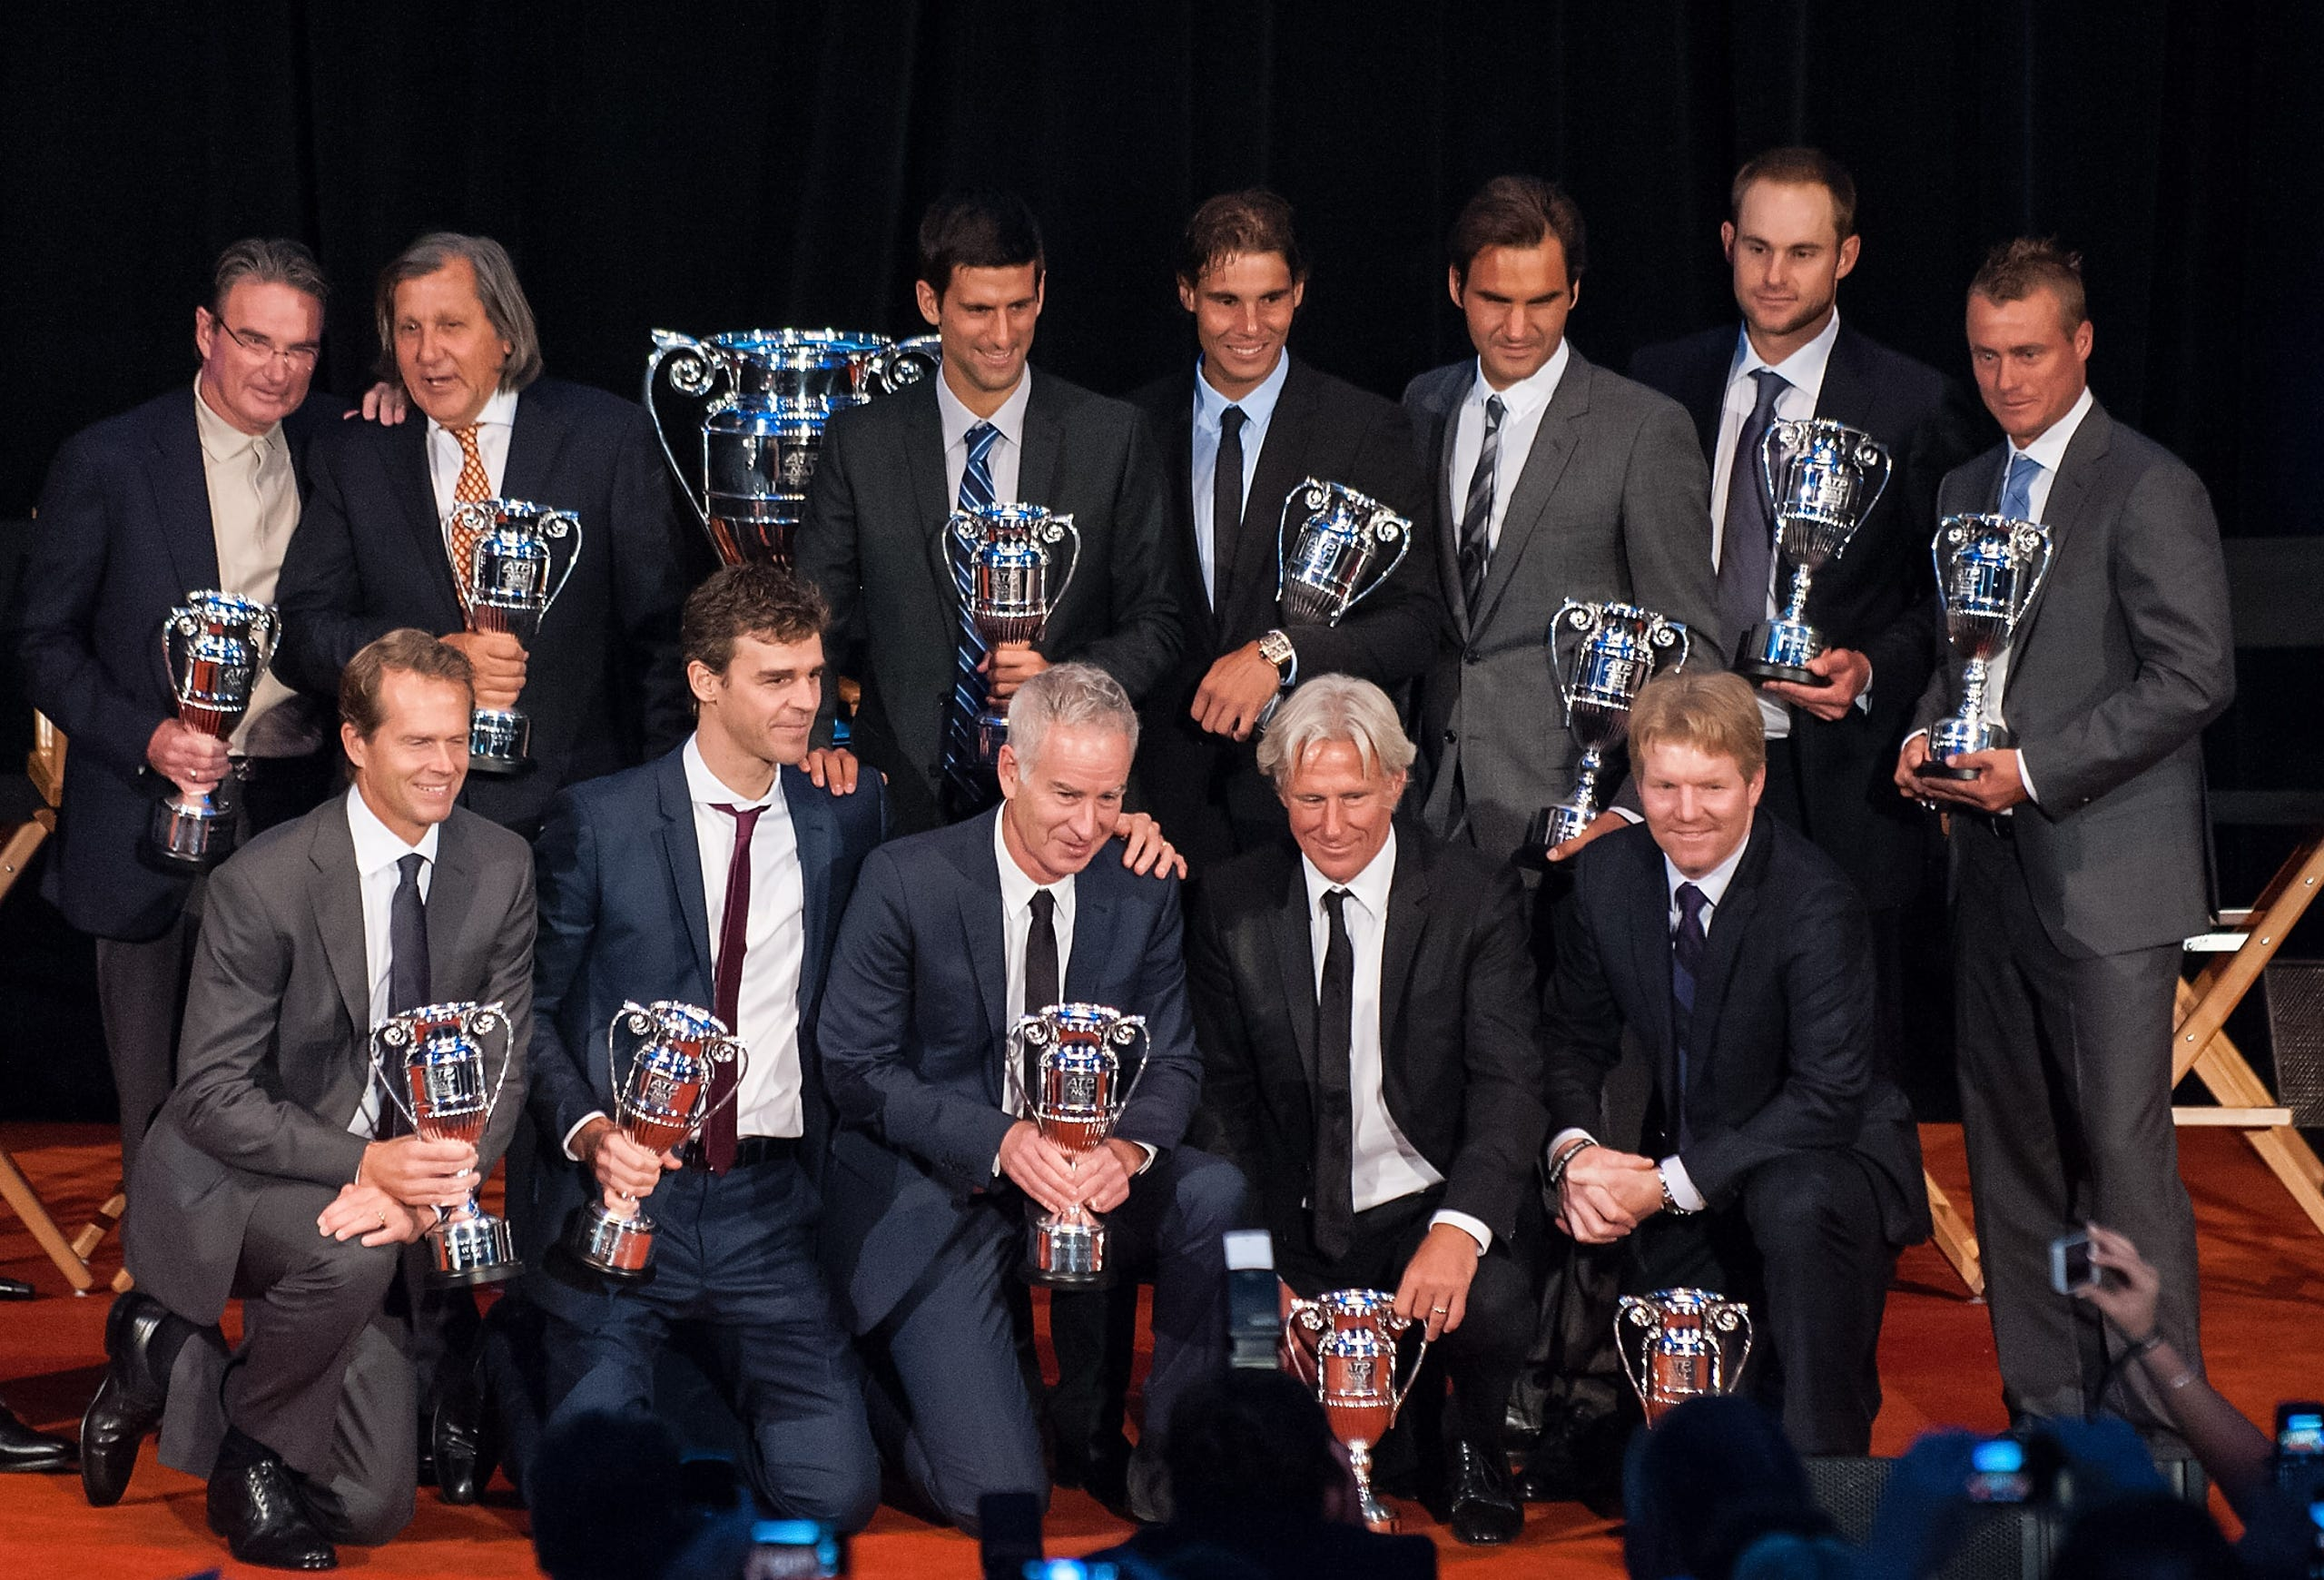 9c3d4091333 Tennis  Men s singles players who have held the No. 1 ranking in ATP Tour  history